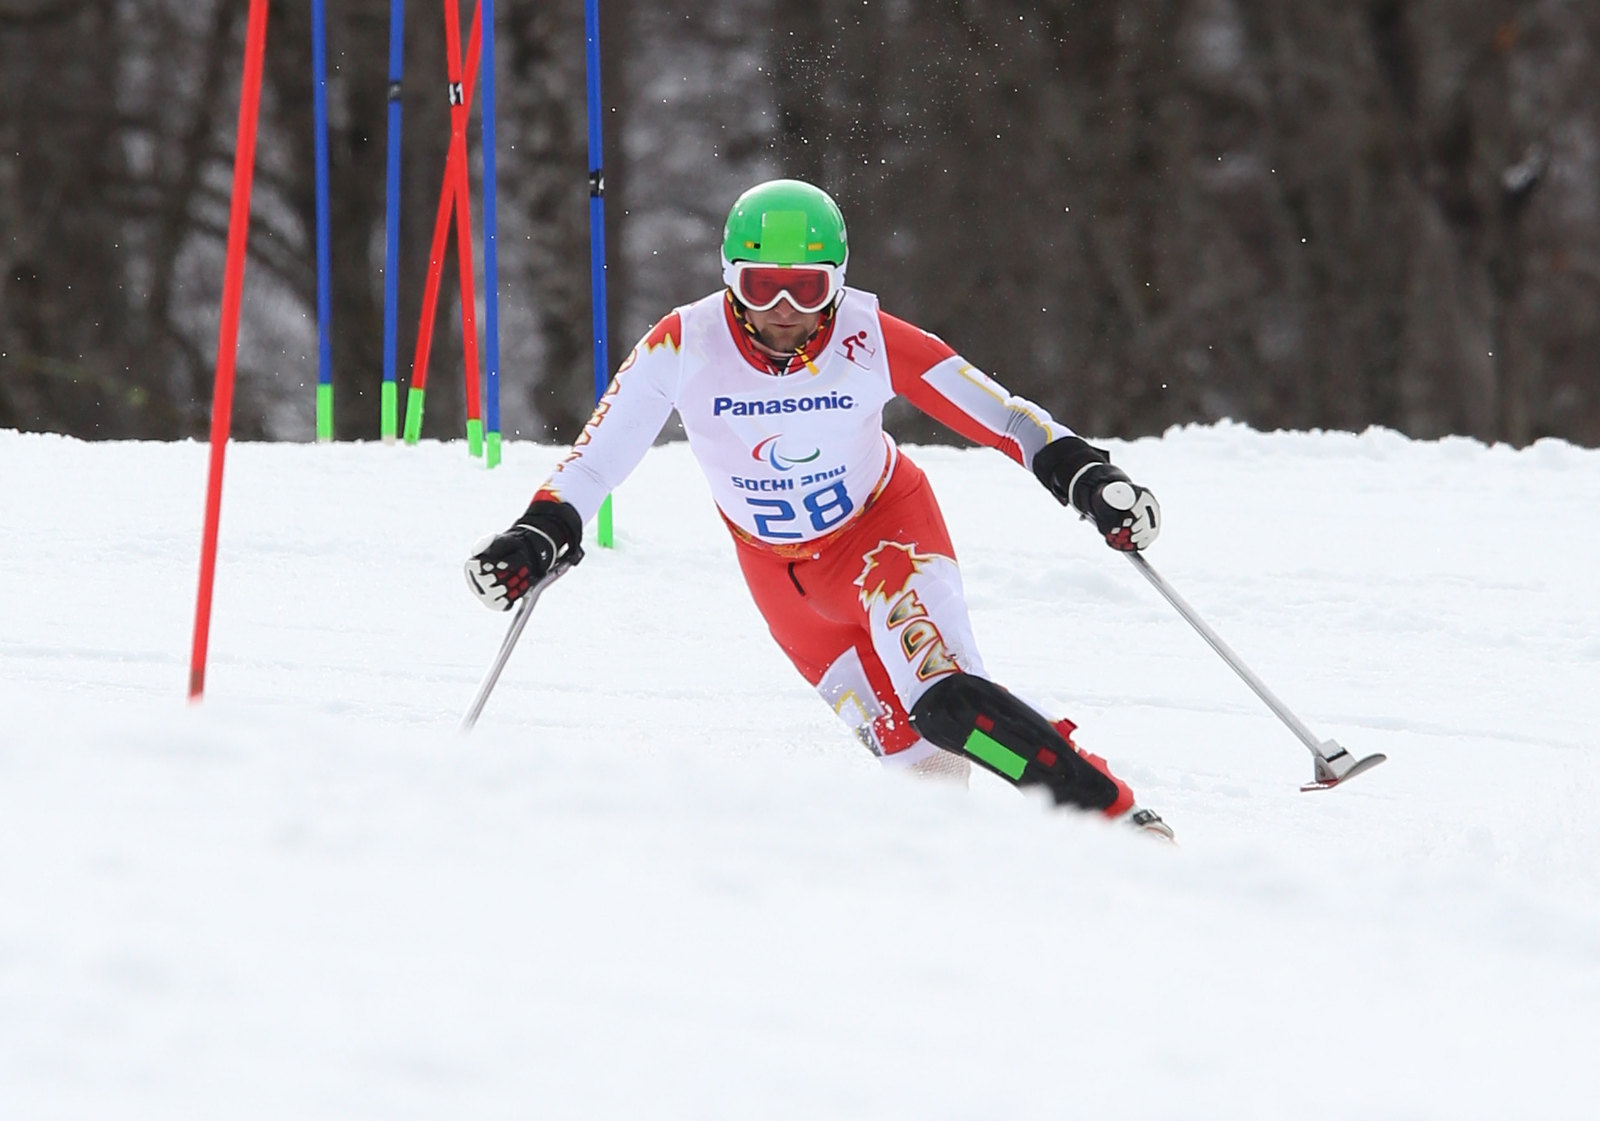 Matt Hallat competes in the slalom at the 2014 Paralympic Winter Games